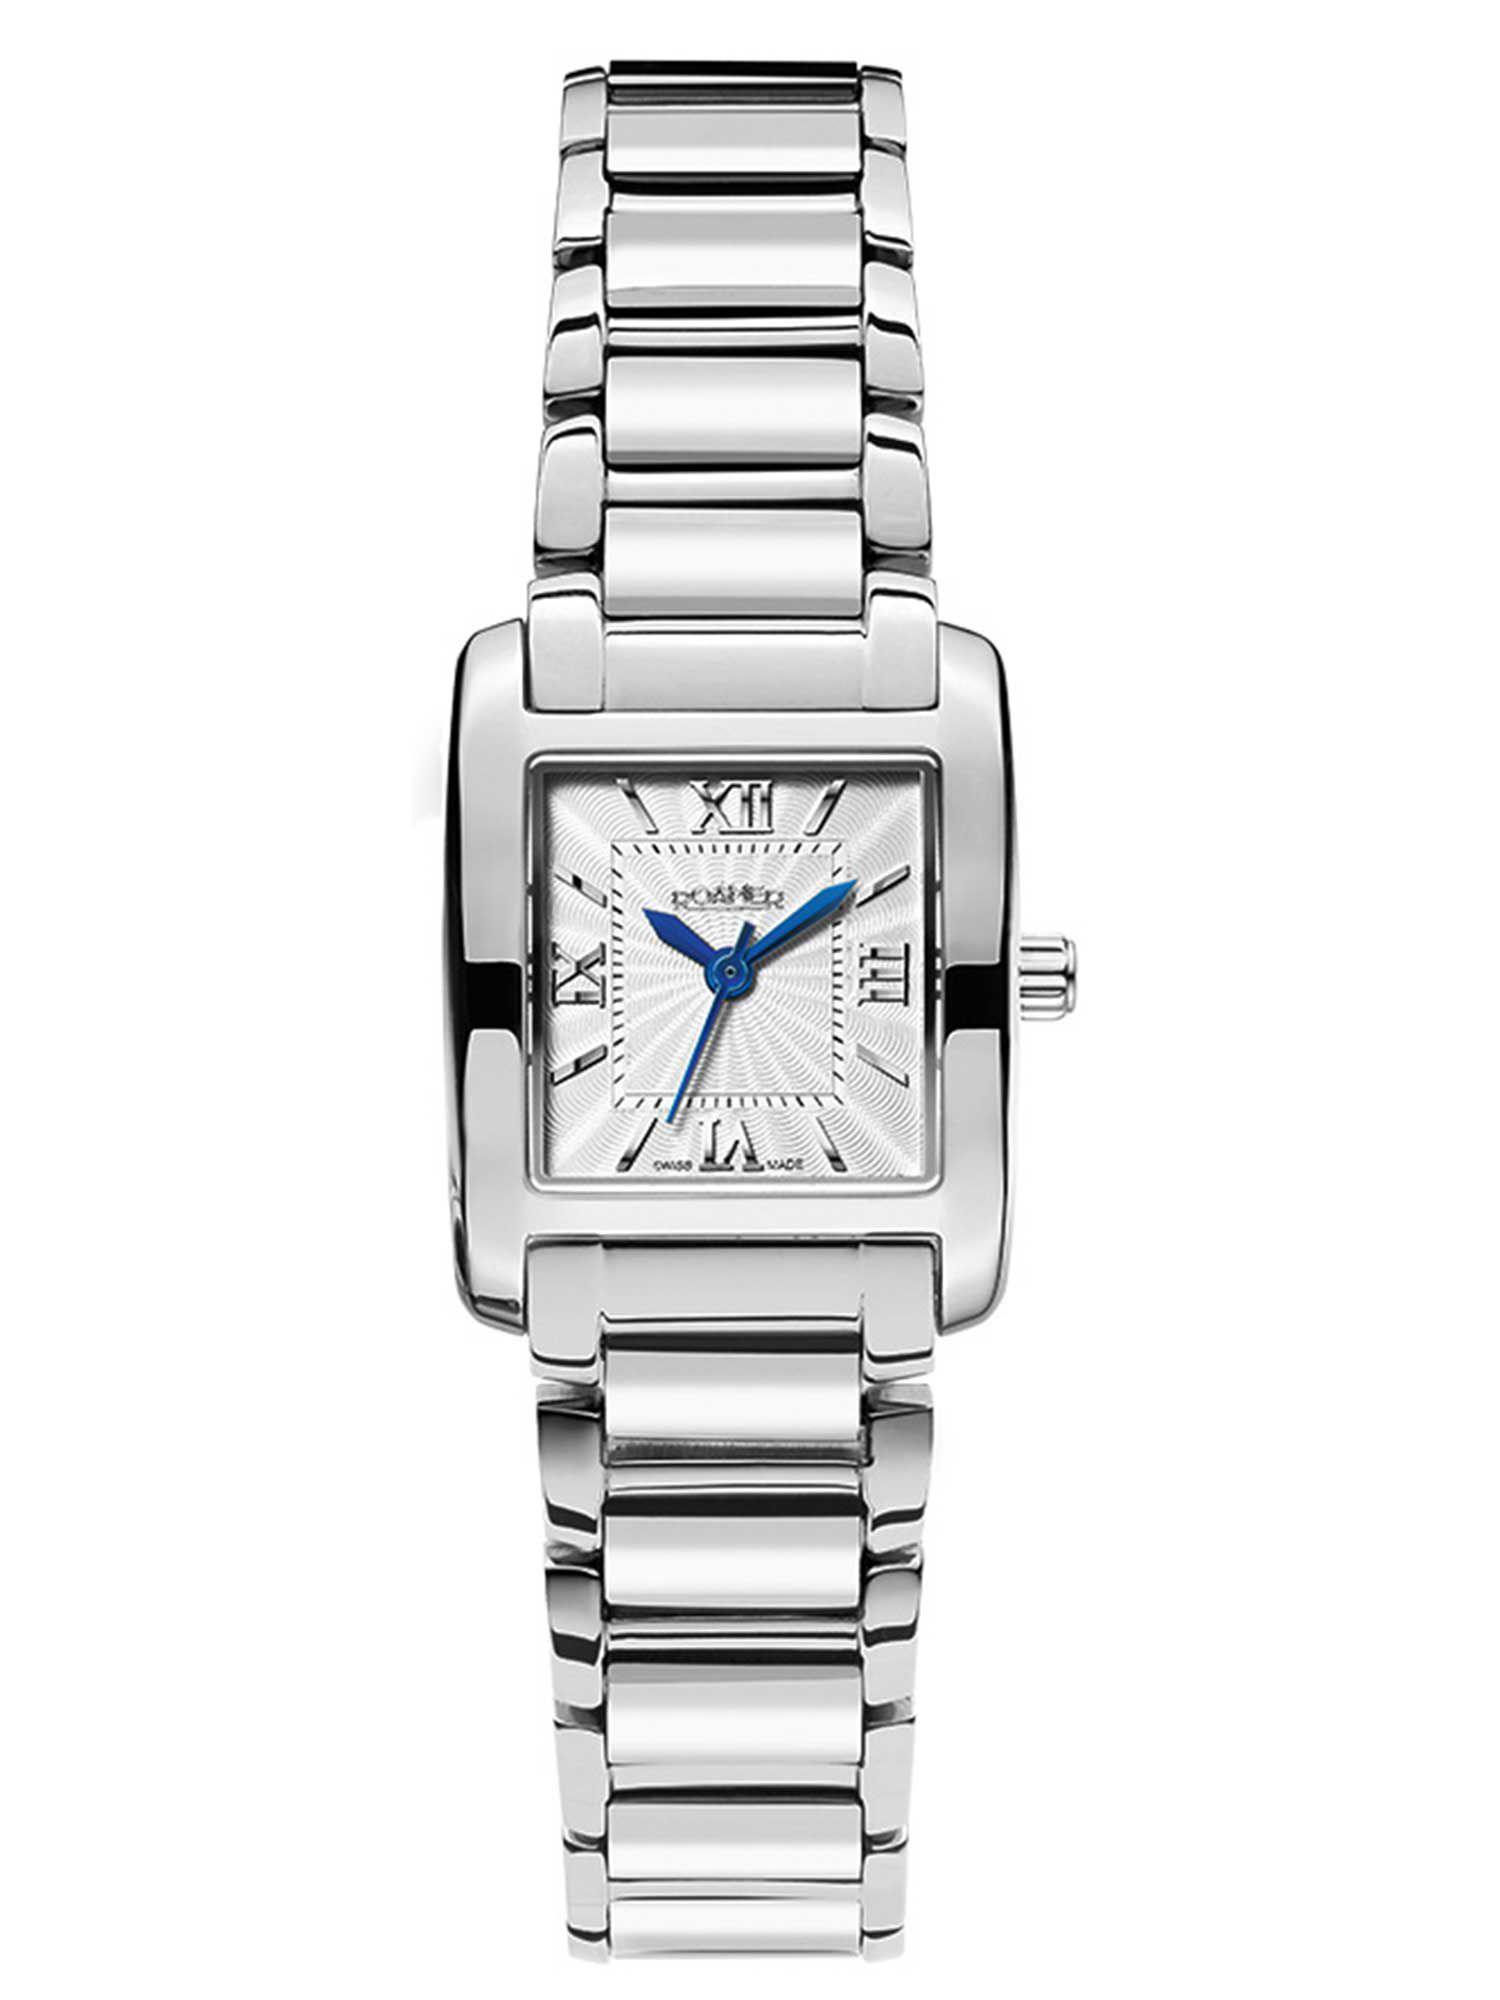 DS73.10ROX Swiss elegance silver ladies watch